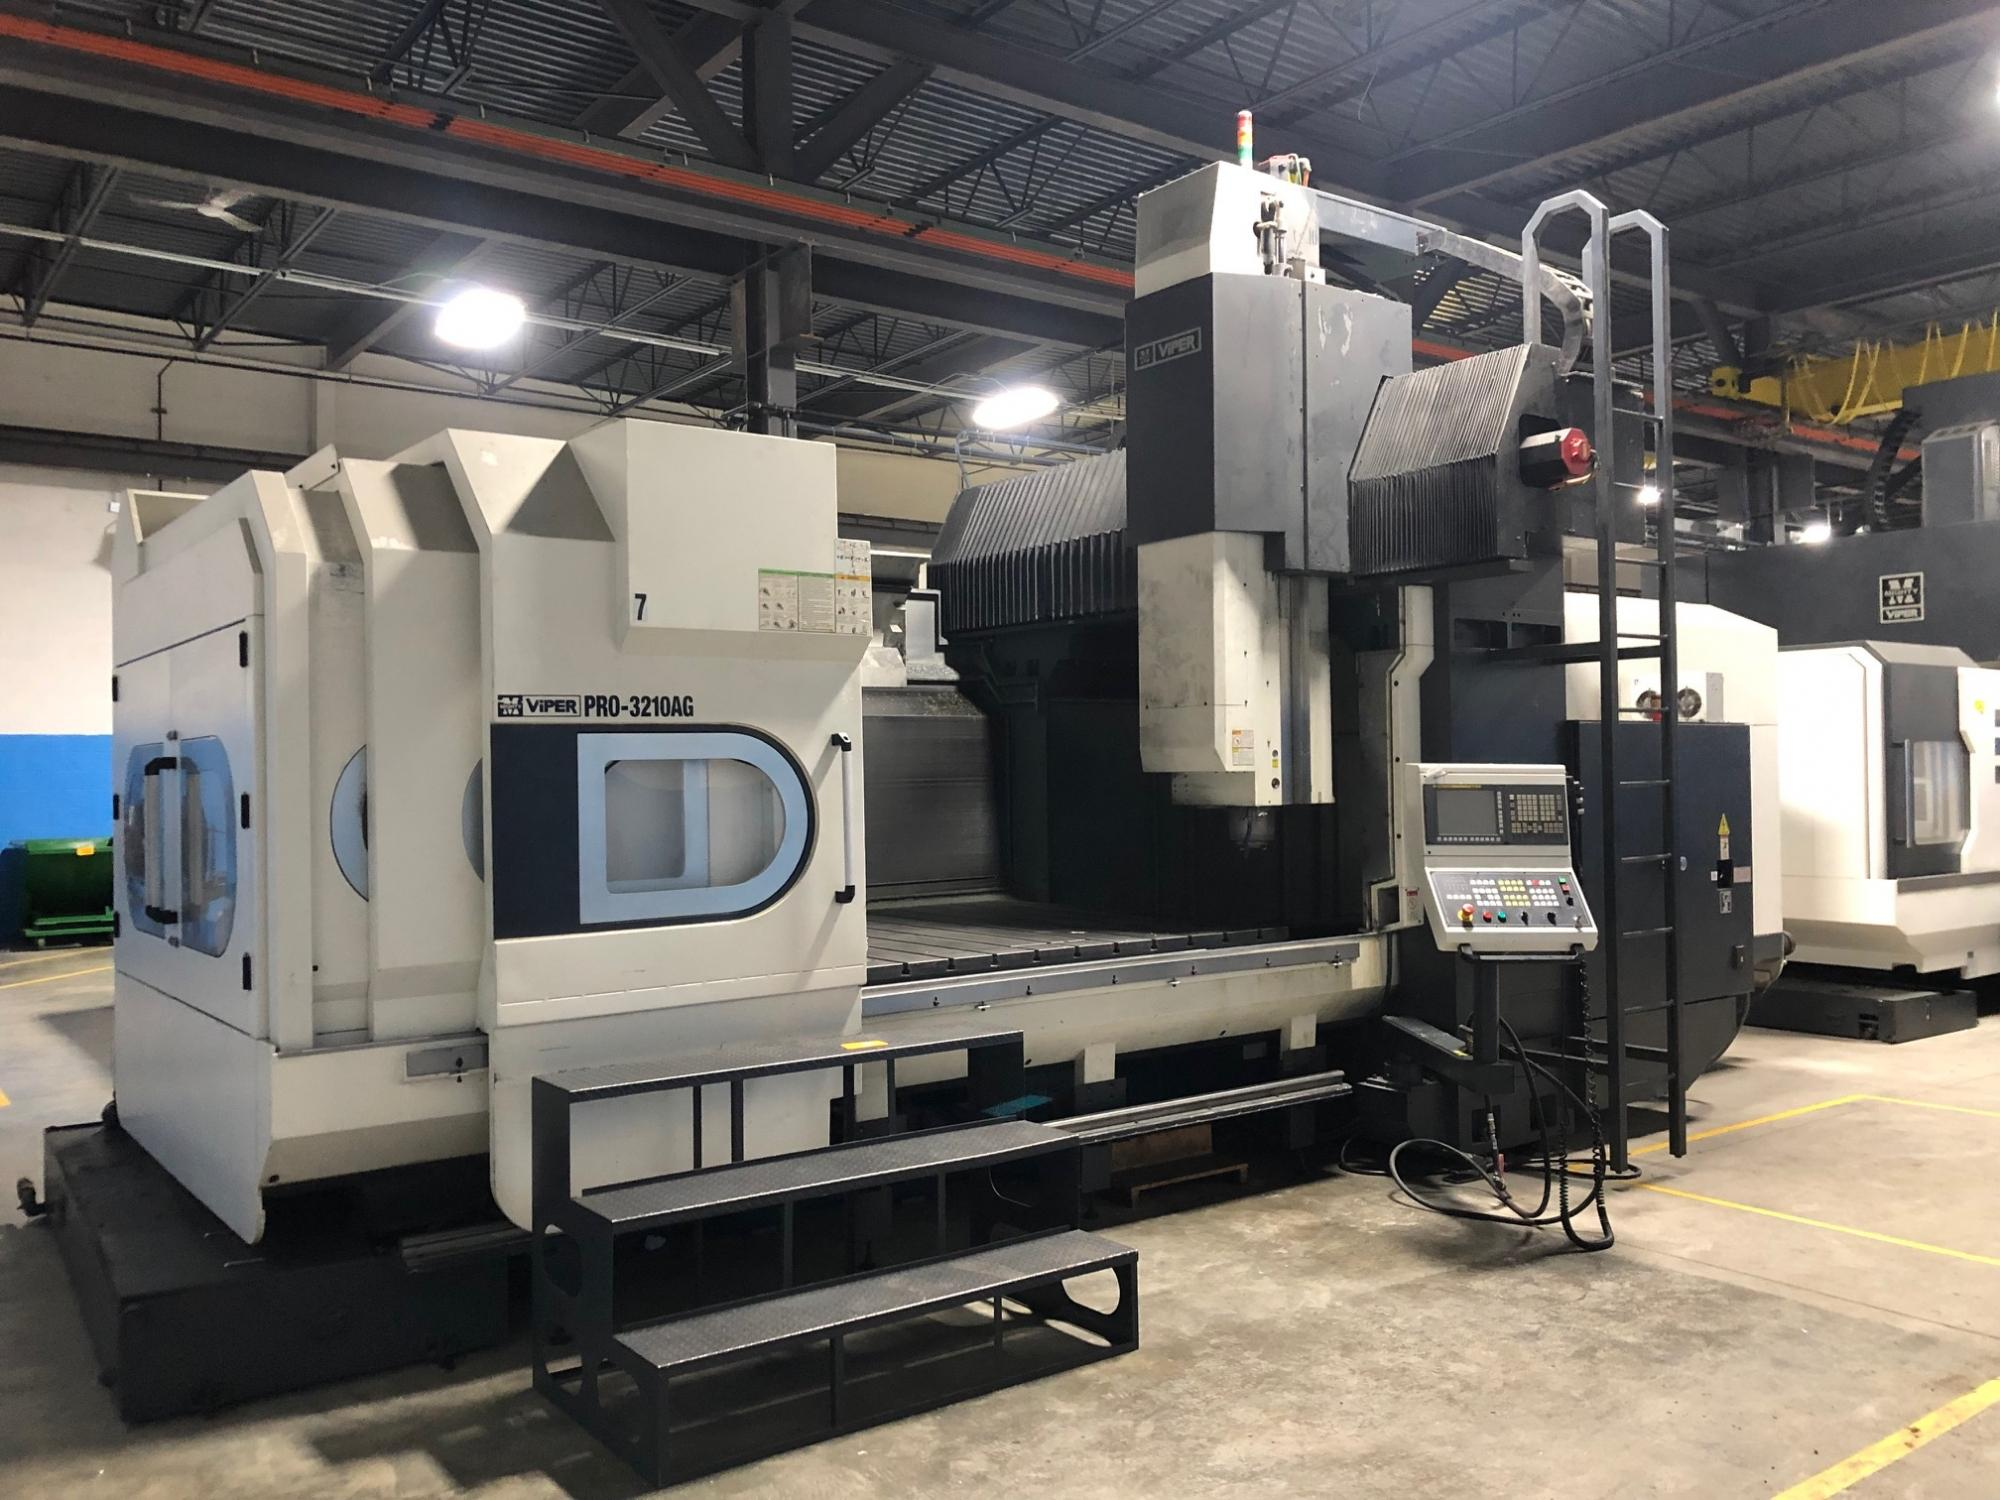 VIPER Pro 3210AG - Machining Centers, Gantry (incld  Bridge & Double